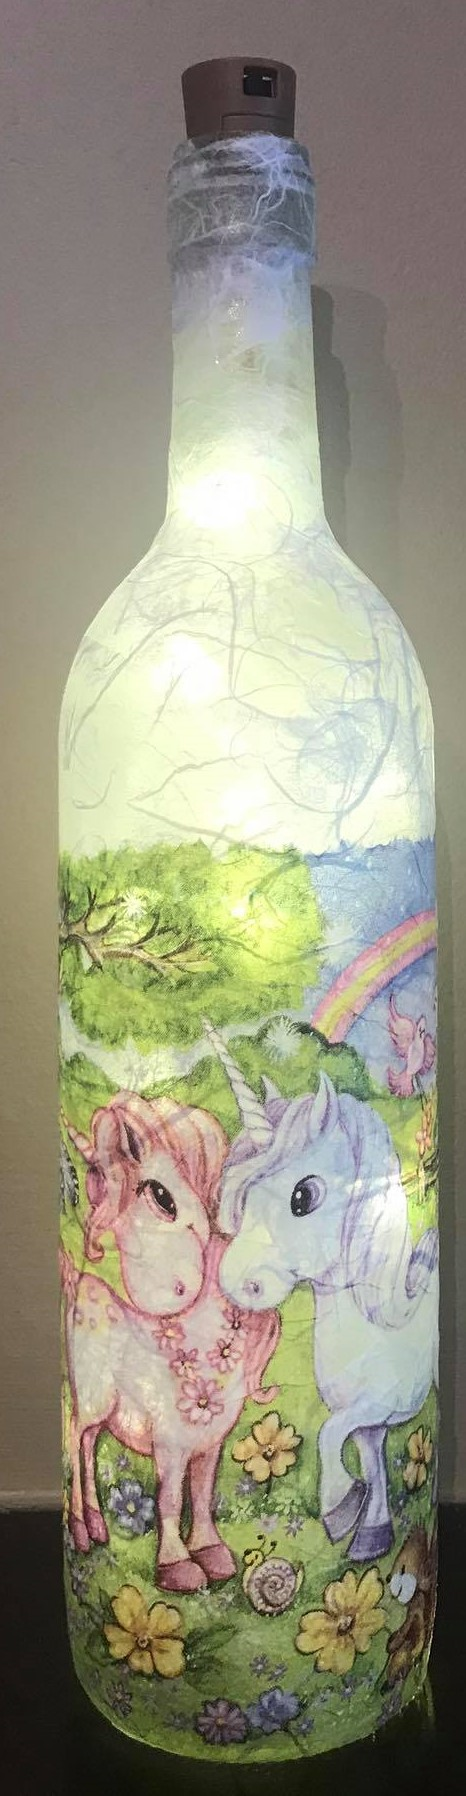 Unicorns Light Up Bottle